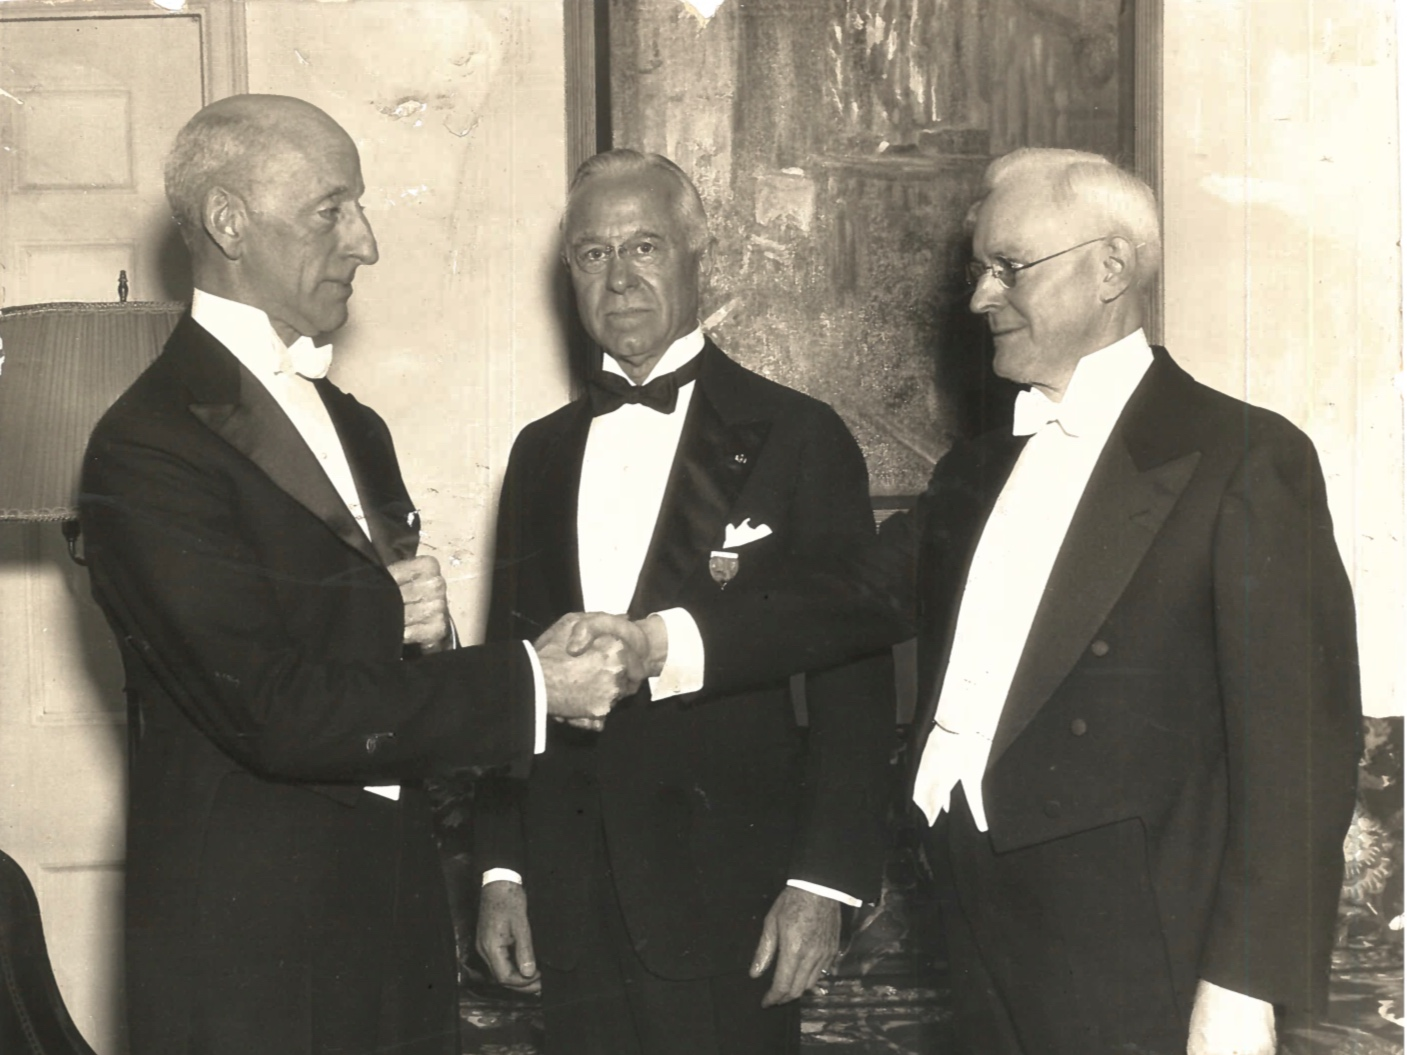 Stuart Gage, past NISS president; H.H. Clarke, NISS treasurer; and Henry Fletcher, NISS president, in 1935. One of the many photographs donated by the National Institute to the Yale University Archives.